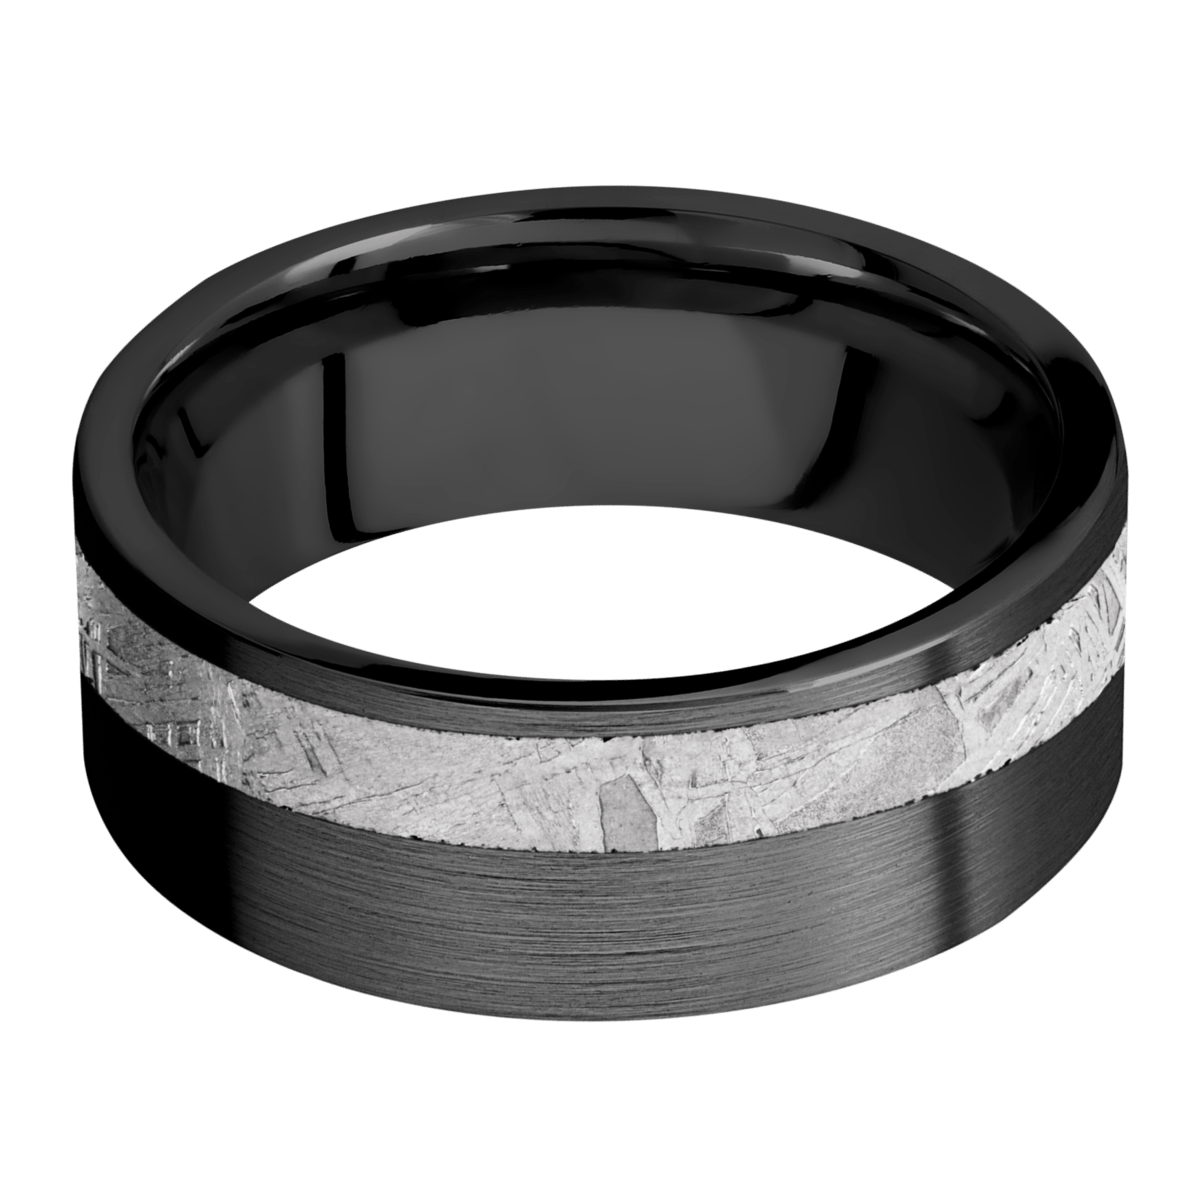 Men's Black Zirconium Ring with Offset Meteorite Inlay